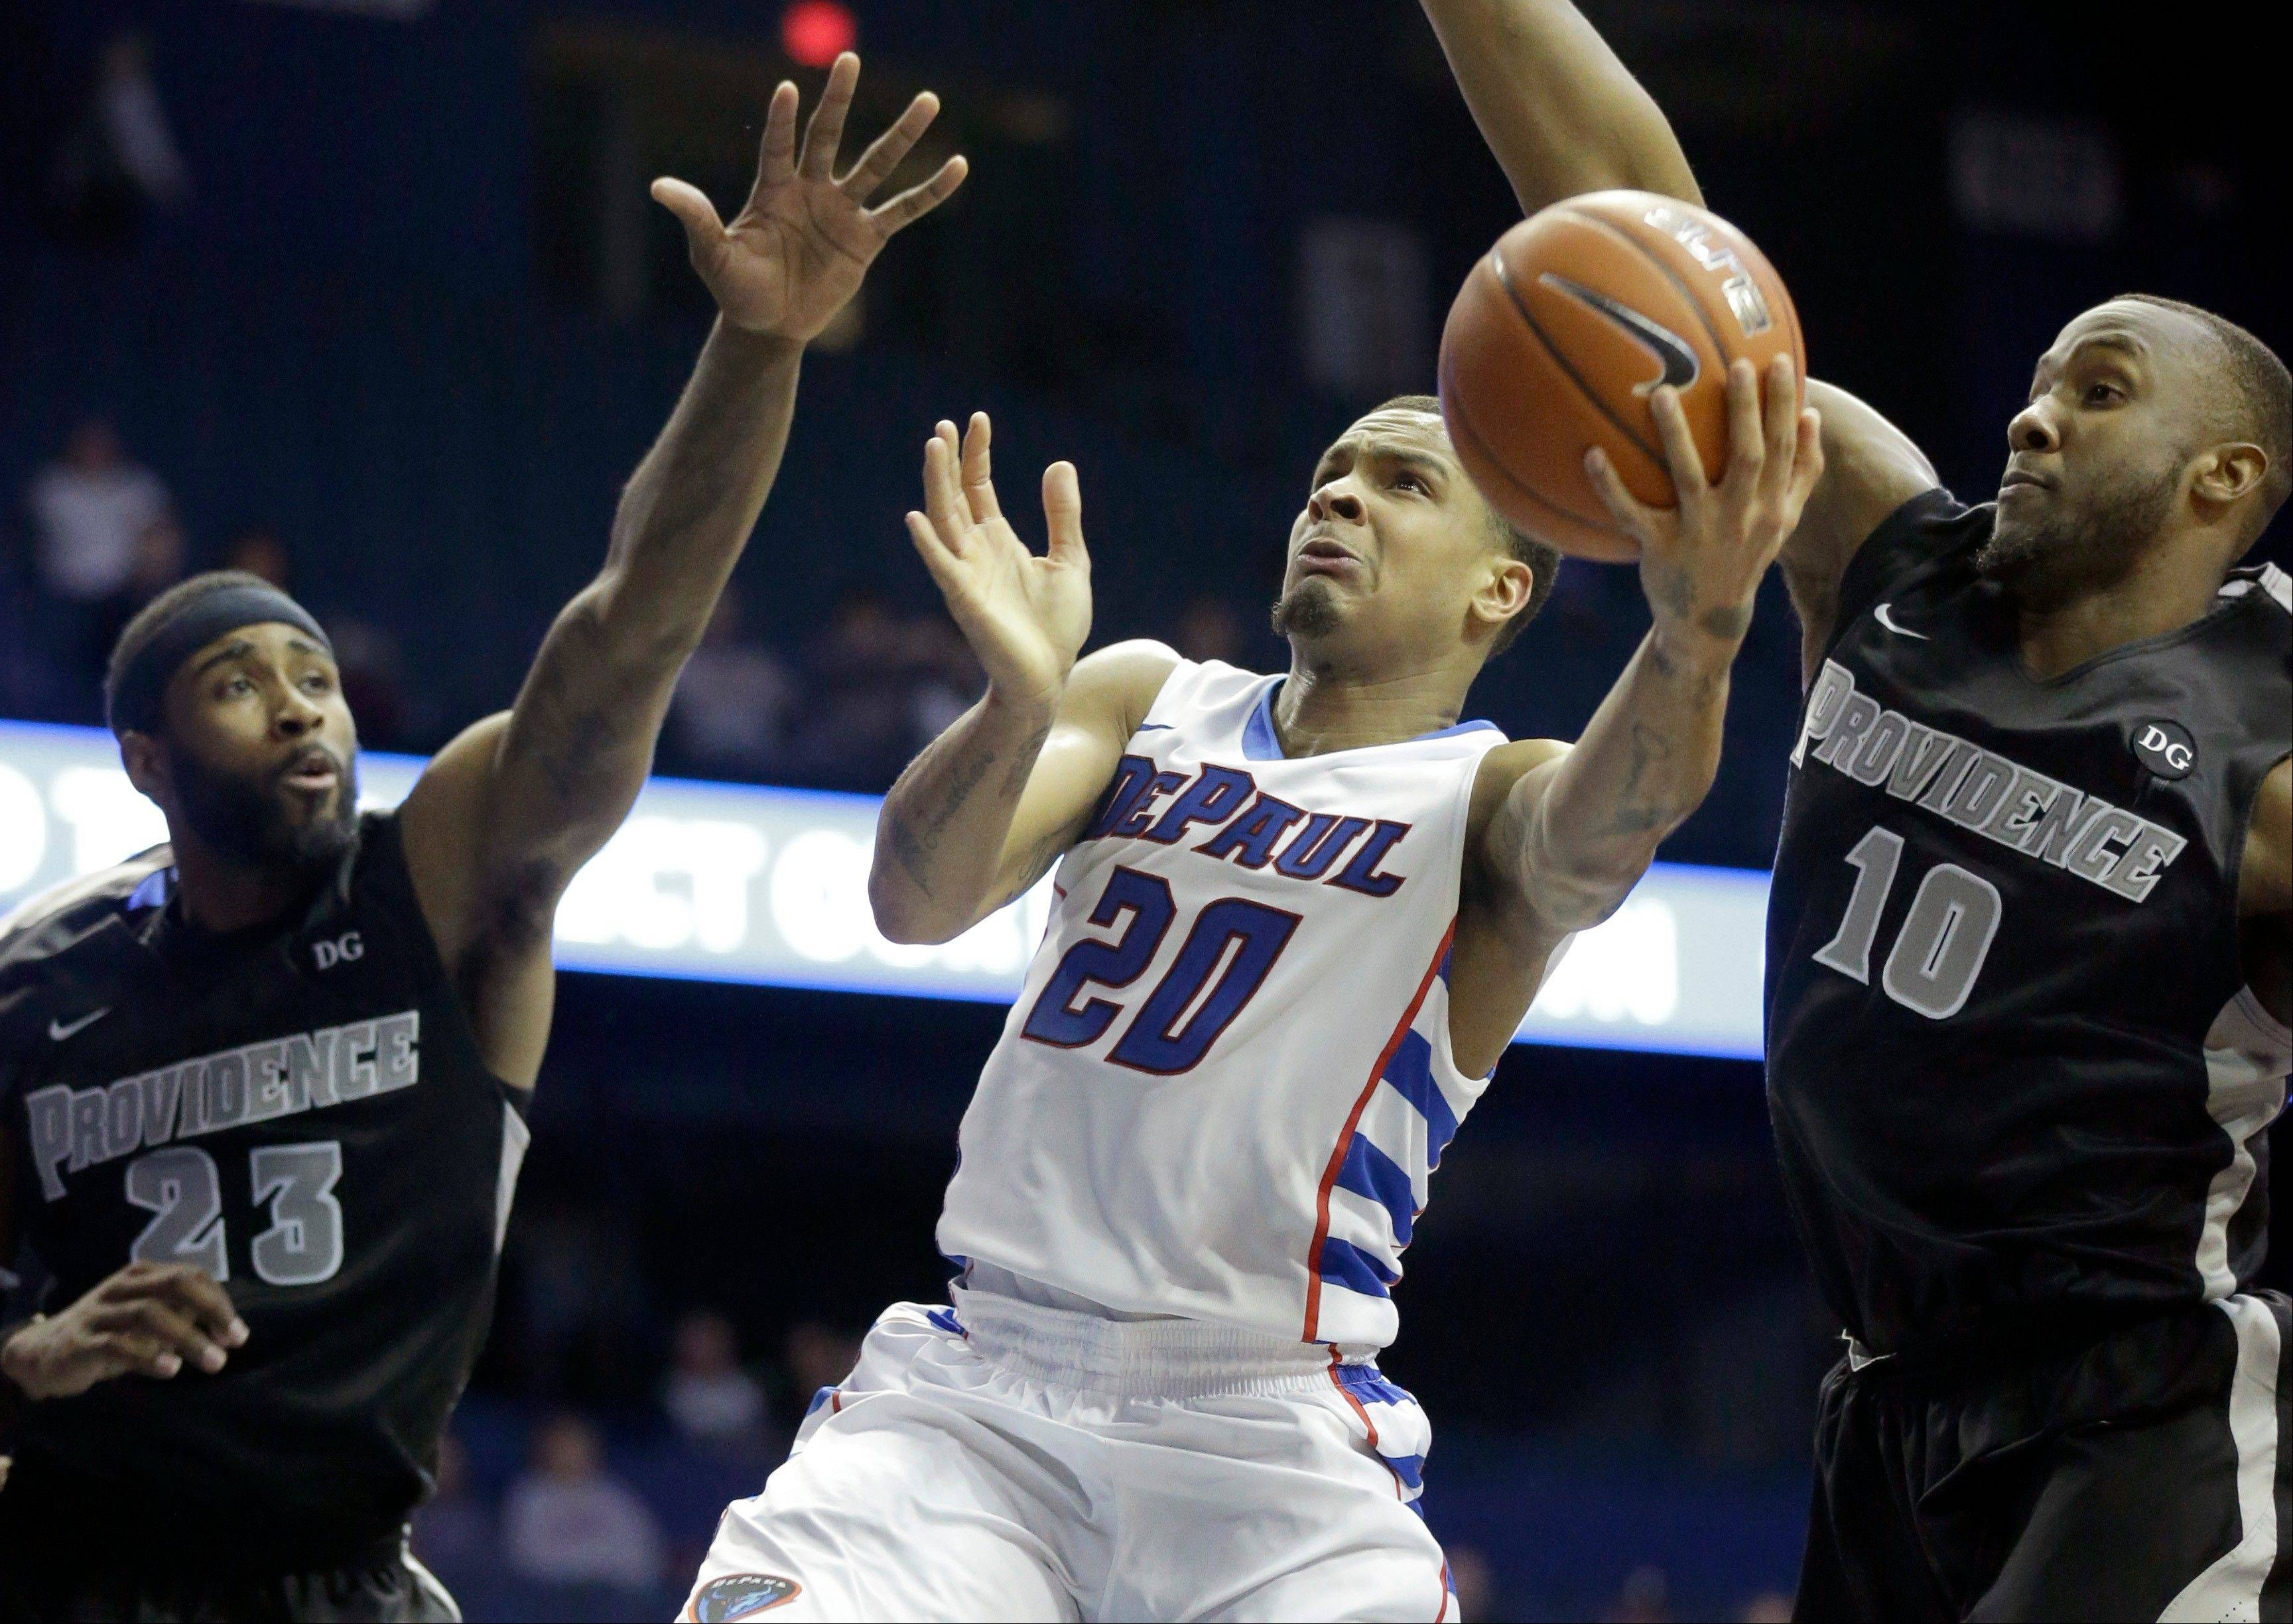 DePaul guard Brandon Young (20) drives to the basket against Providence forward LaDontae Henton (23) and Kadeem Batts (10) during the second half of an NCAA college basketball game in Rosemont, Ill., on Saturday, Feb. 1, 2014. Providence won 77-72.